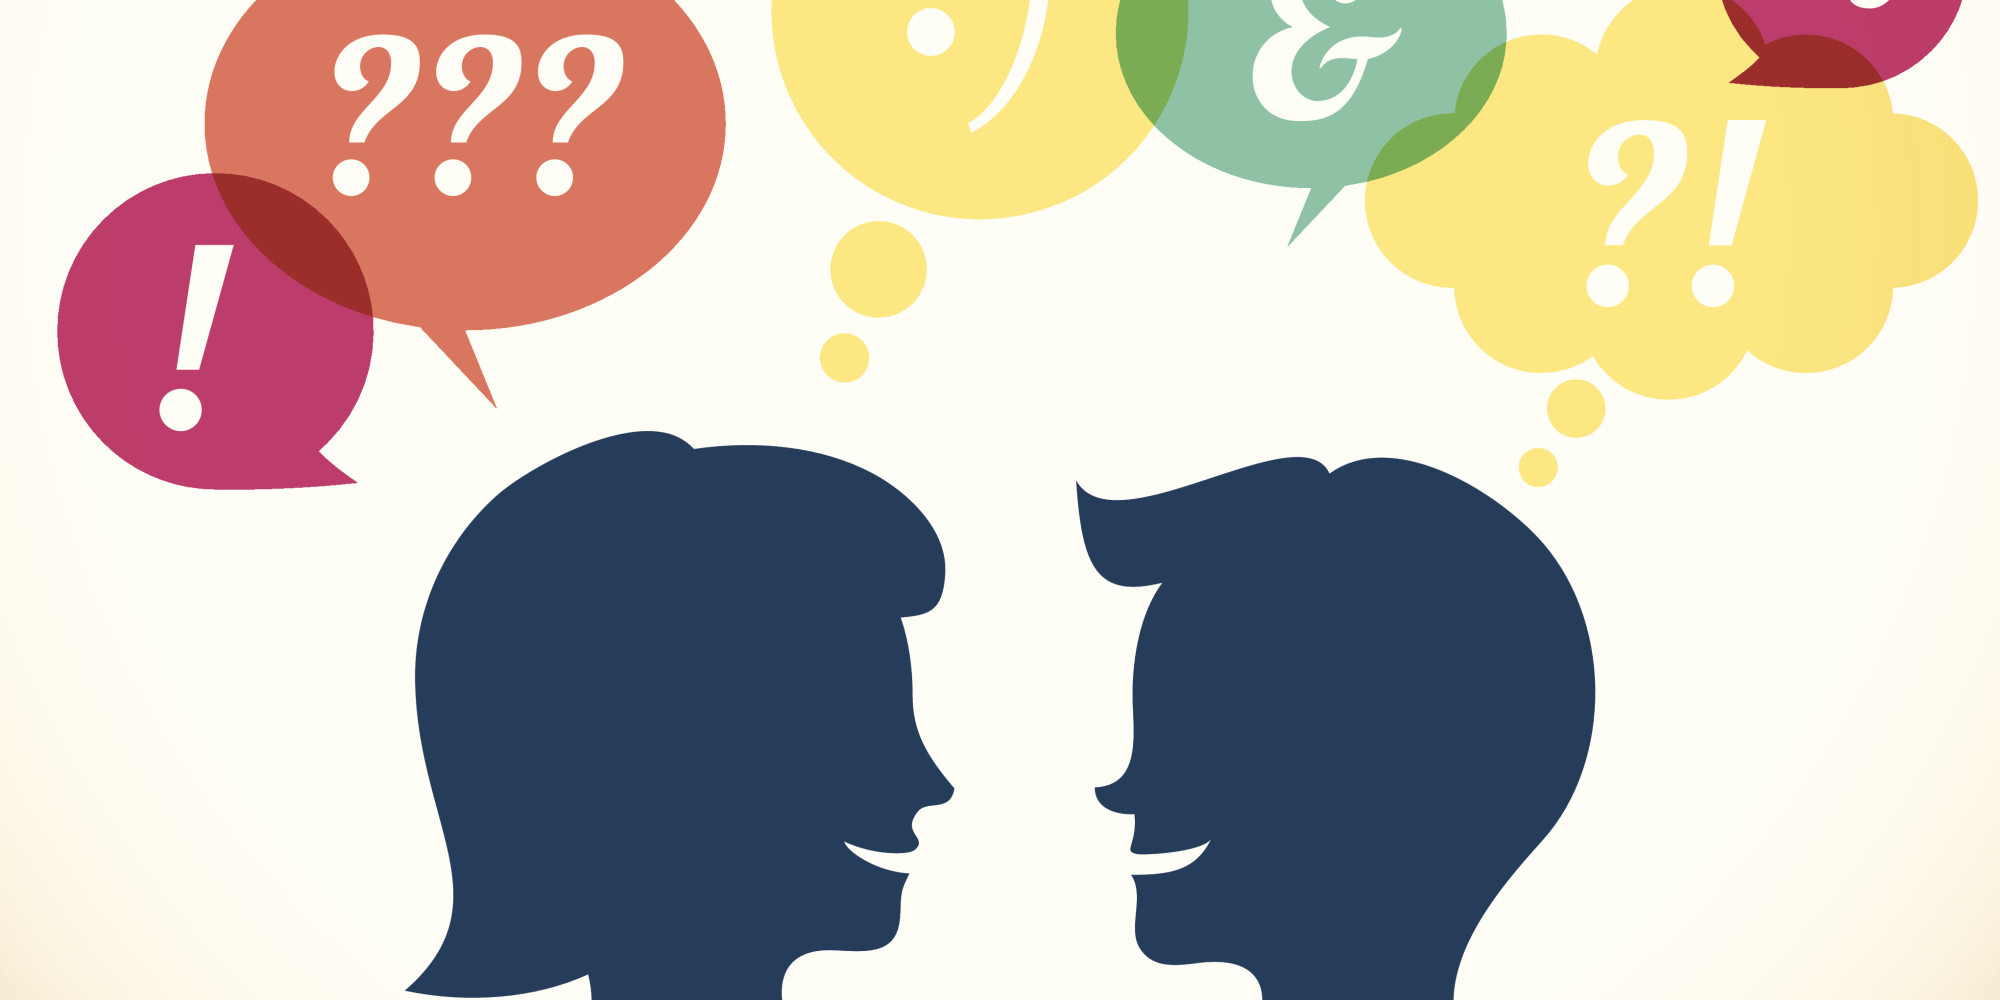 An illustration of two people talking.